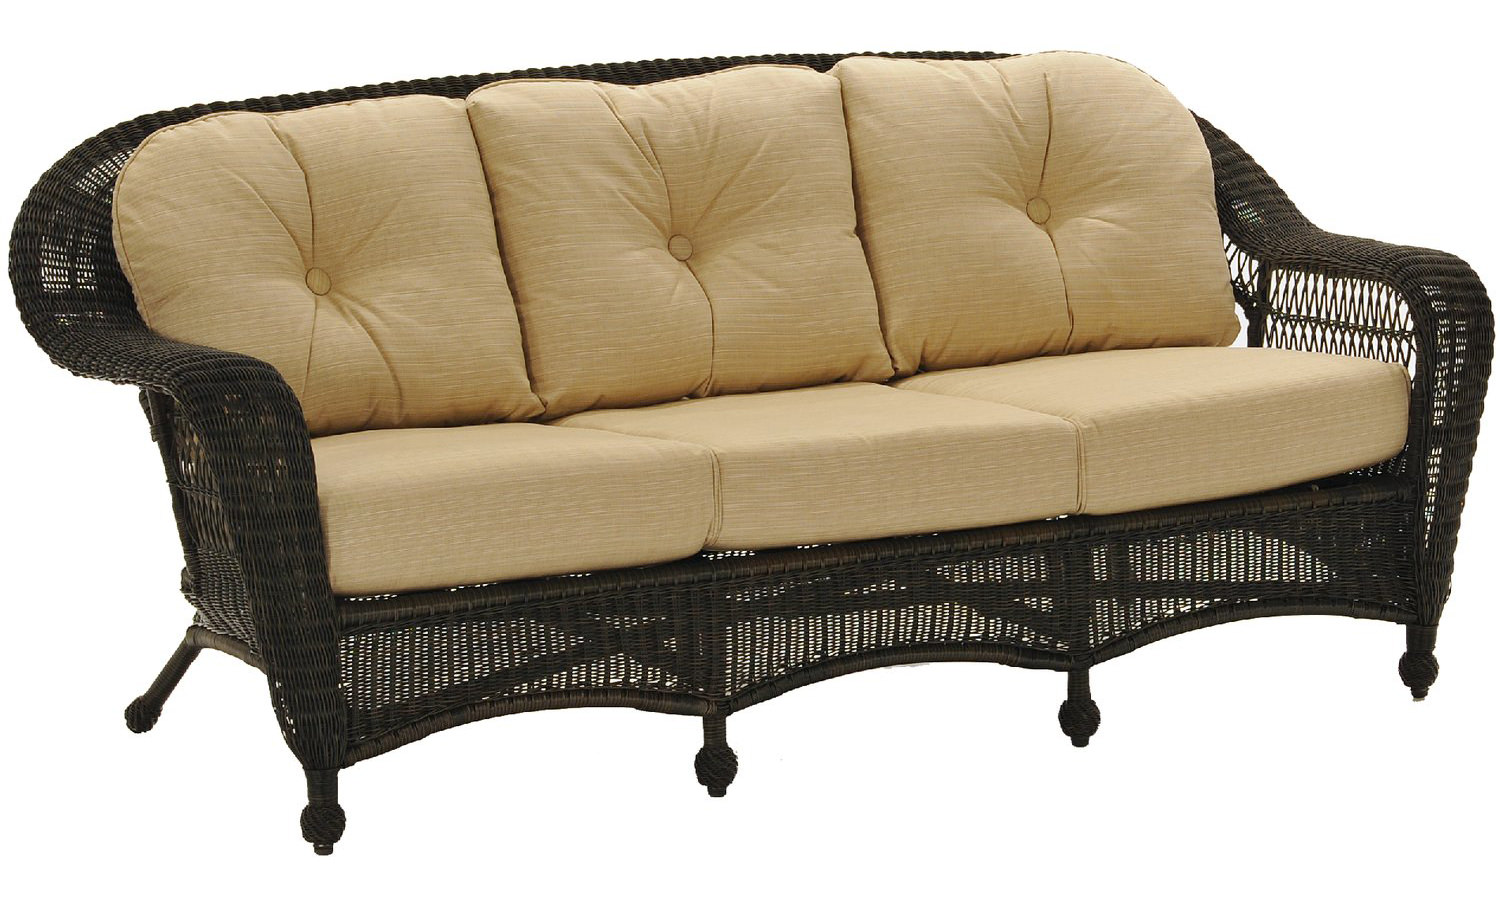 Charleston Wicker Sofa Outdoor By North Cape